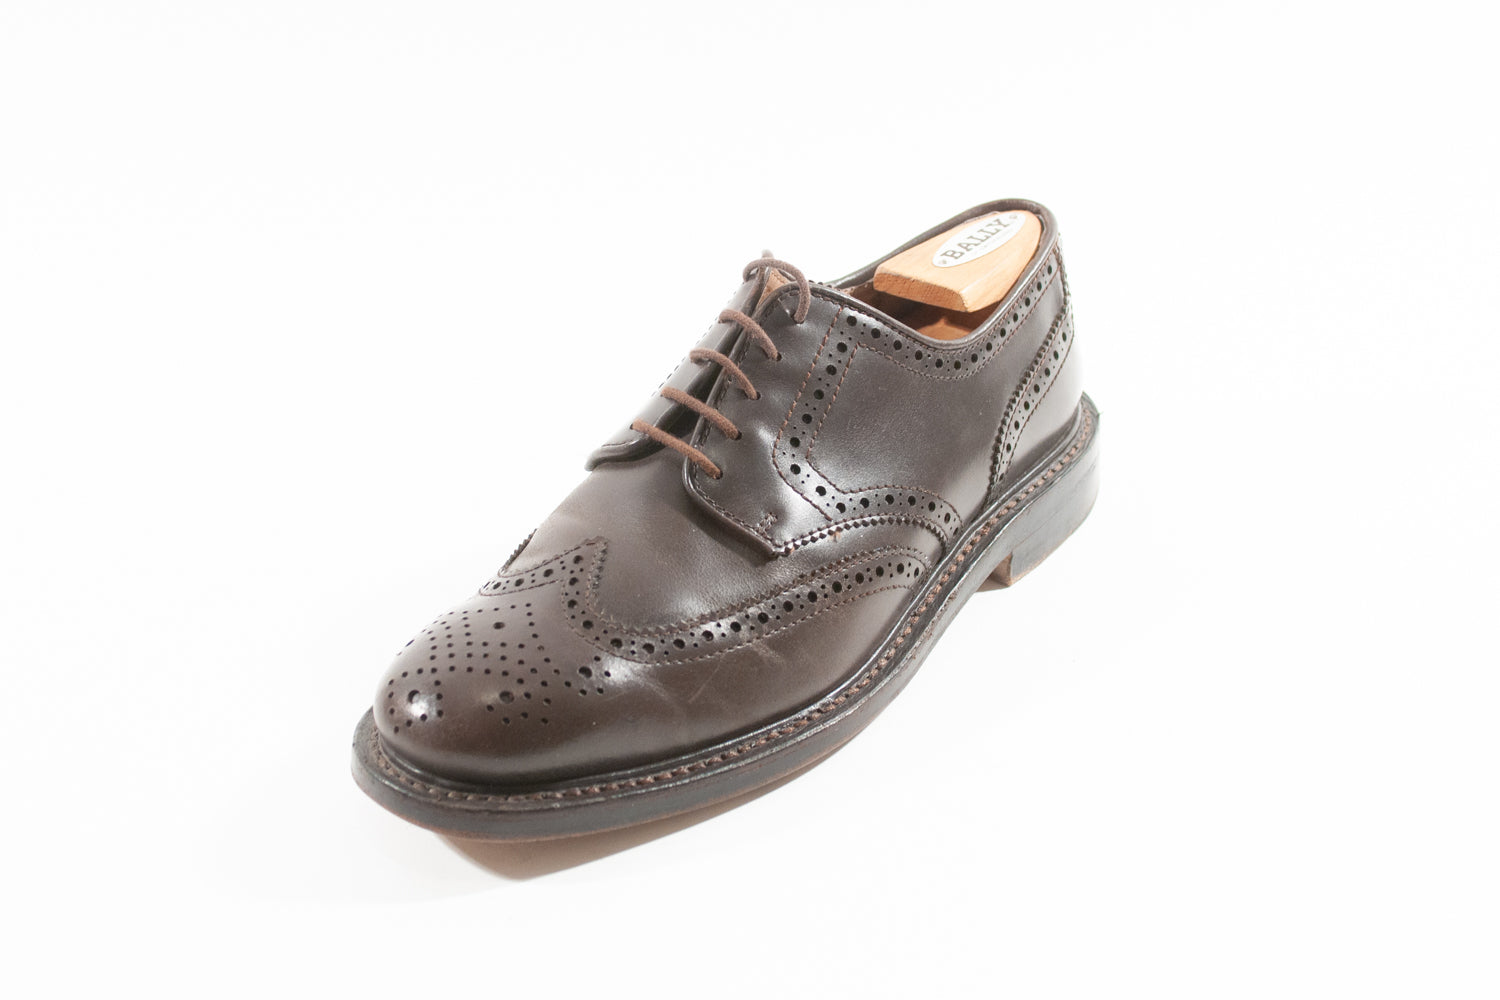 J.Crew Dark Brown Wing Tip Shoes for Luxmrkt.com Menswear Consignment Edmonton